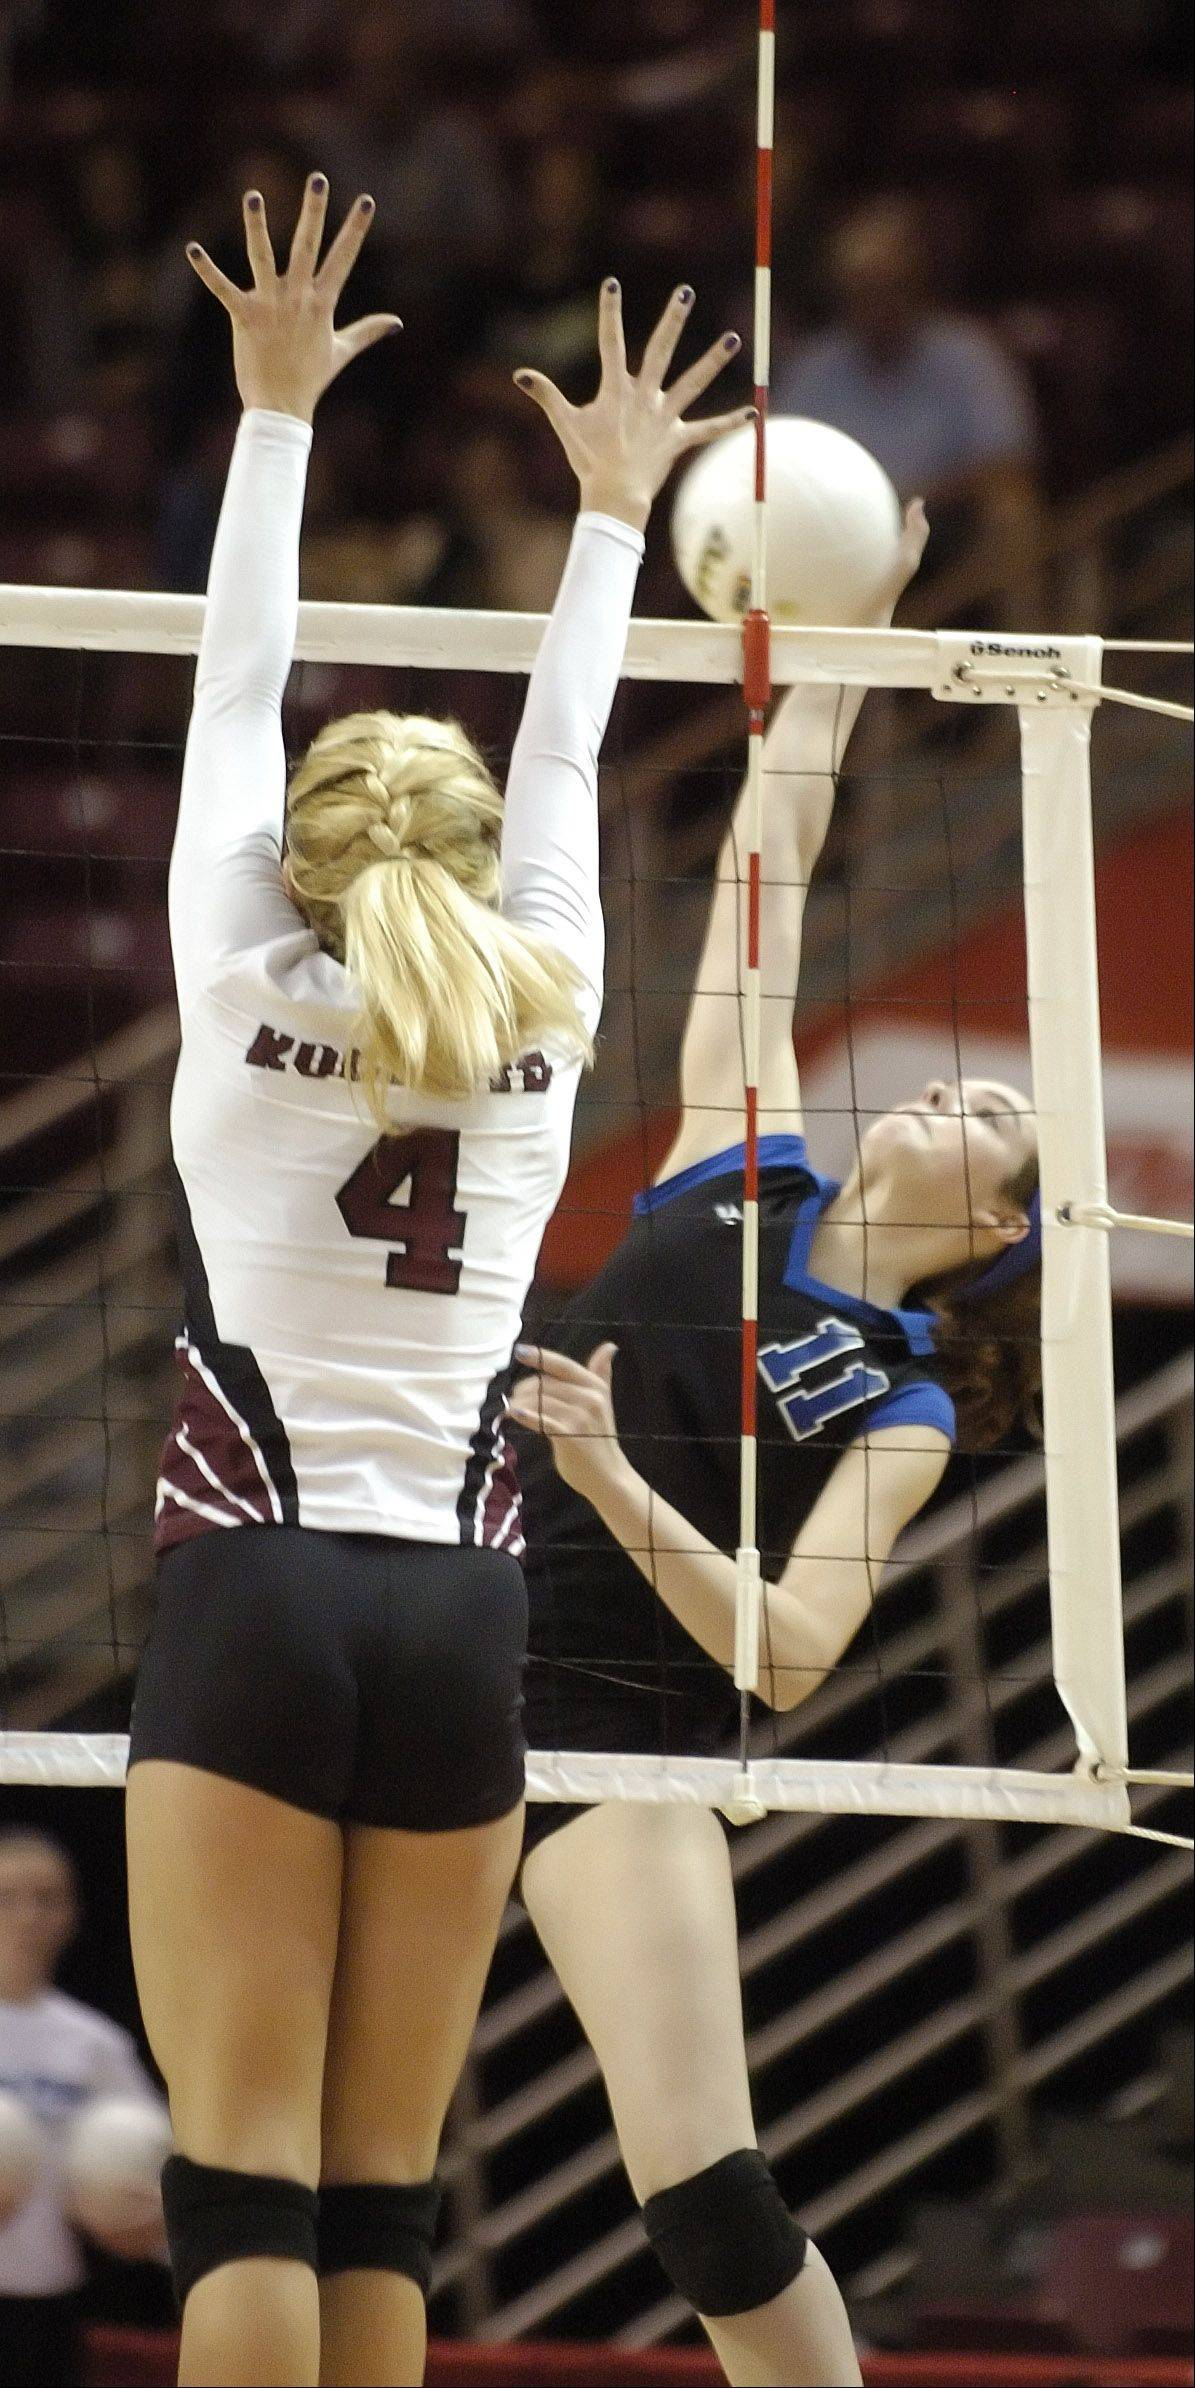 Kim Russell of Richmond-Burton,left, goes up for a block while Becca Shearer spikes the ball. This took place during the class 3A girls volleyball championship Saturday at Redbird Arena, on Illinois State campus in Bloomington-Normal.